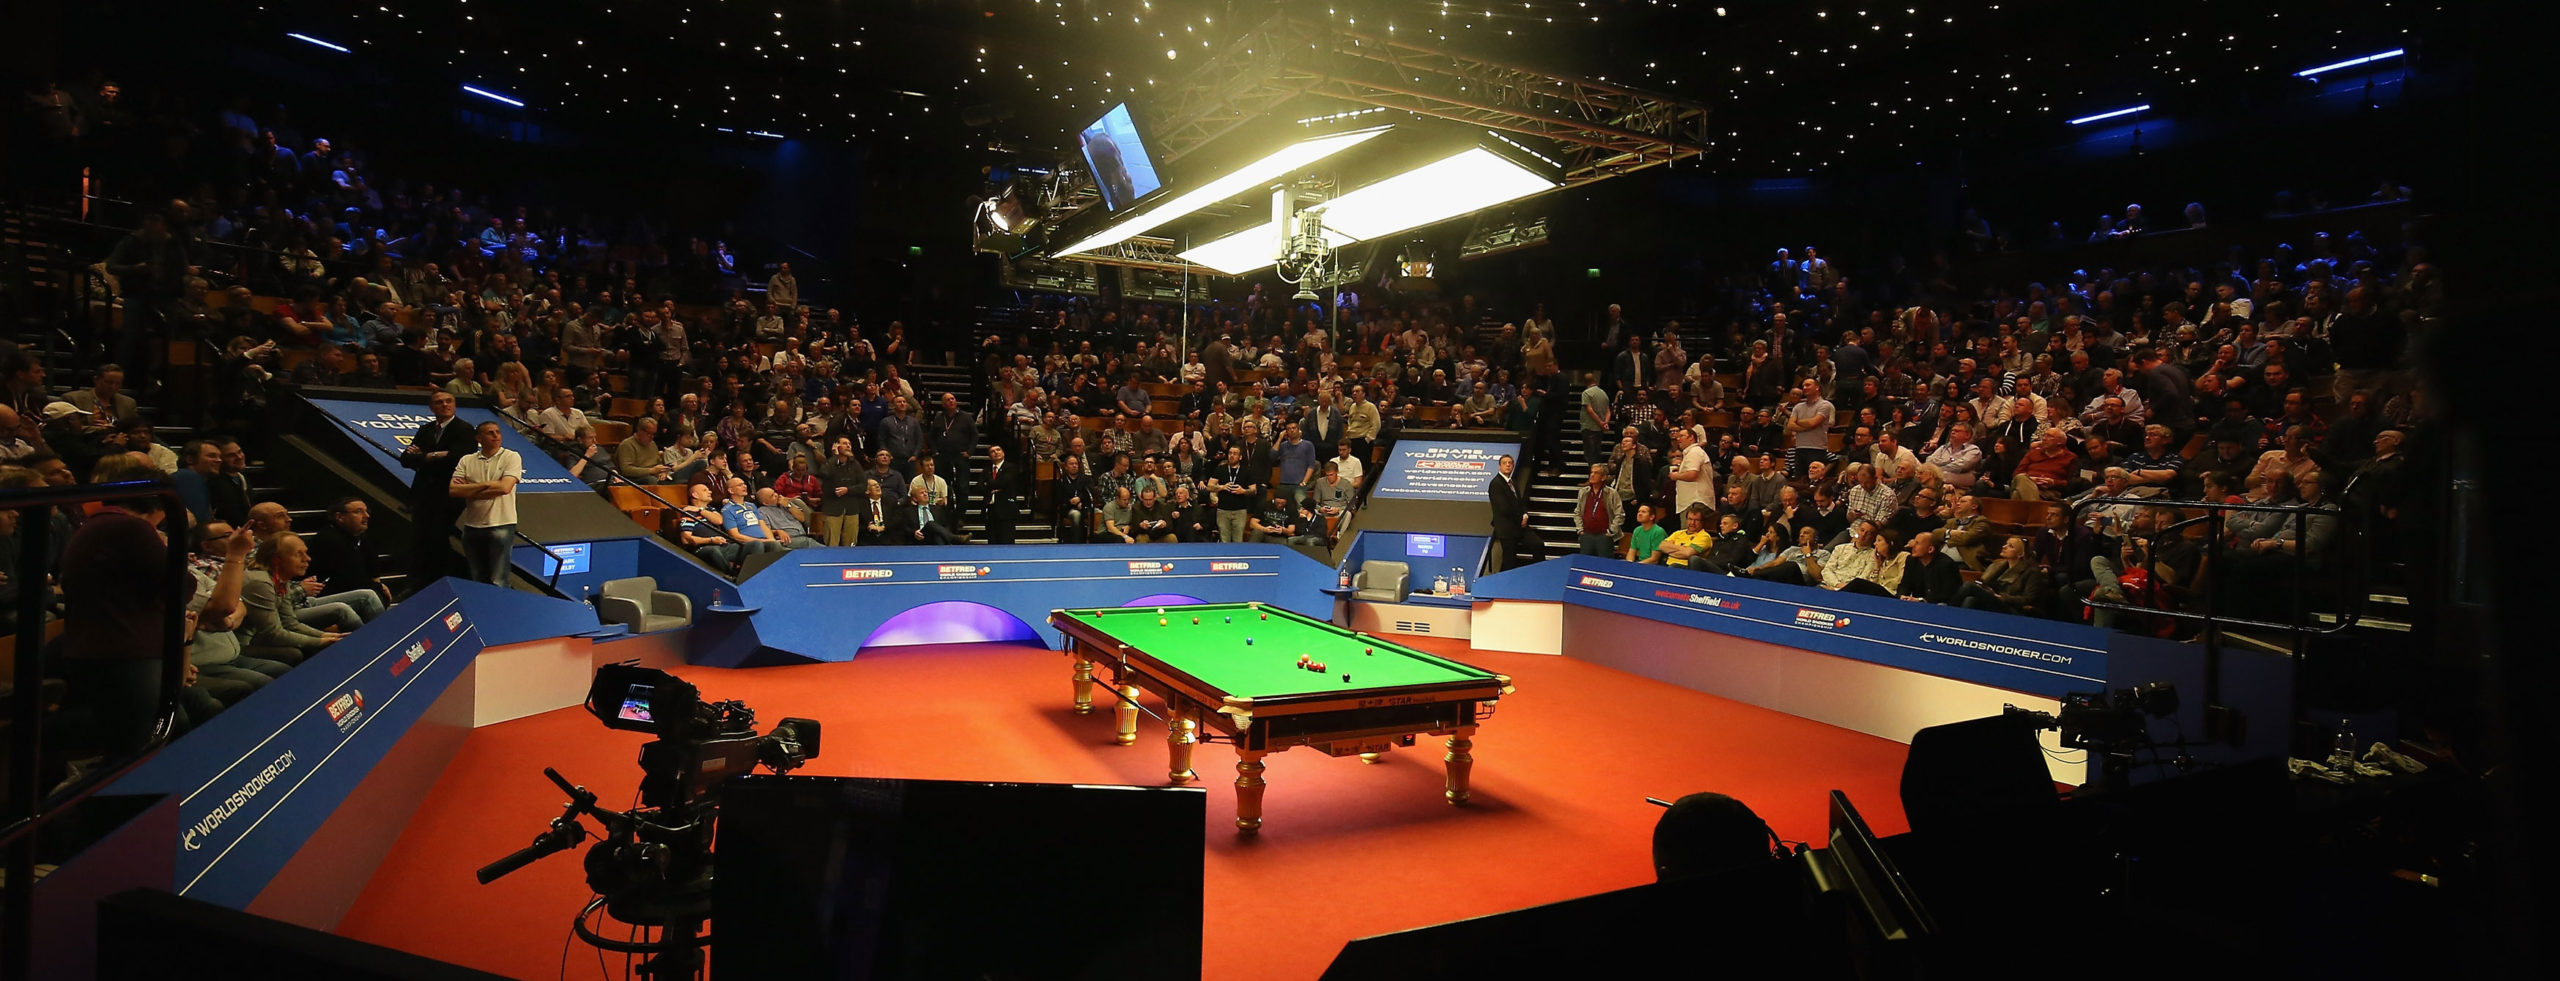 Analysis: Who are the 10 best snooker players in the world?